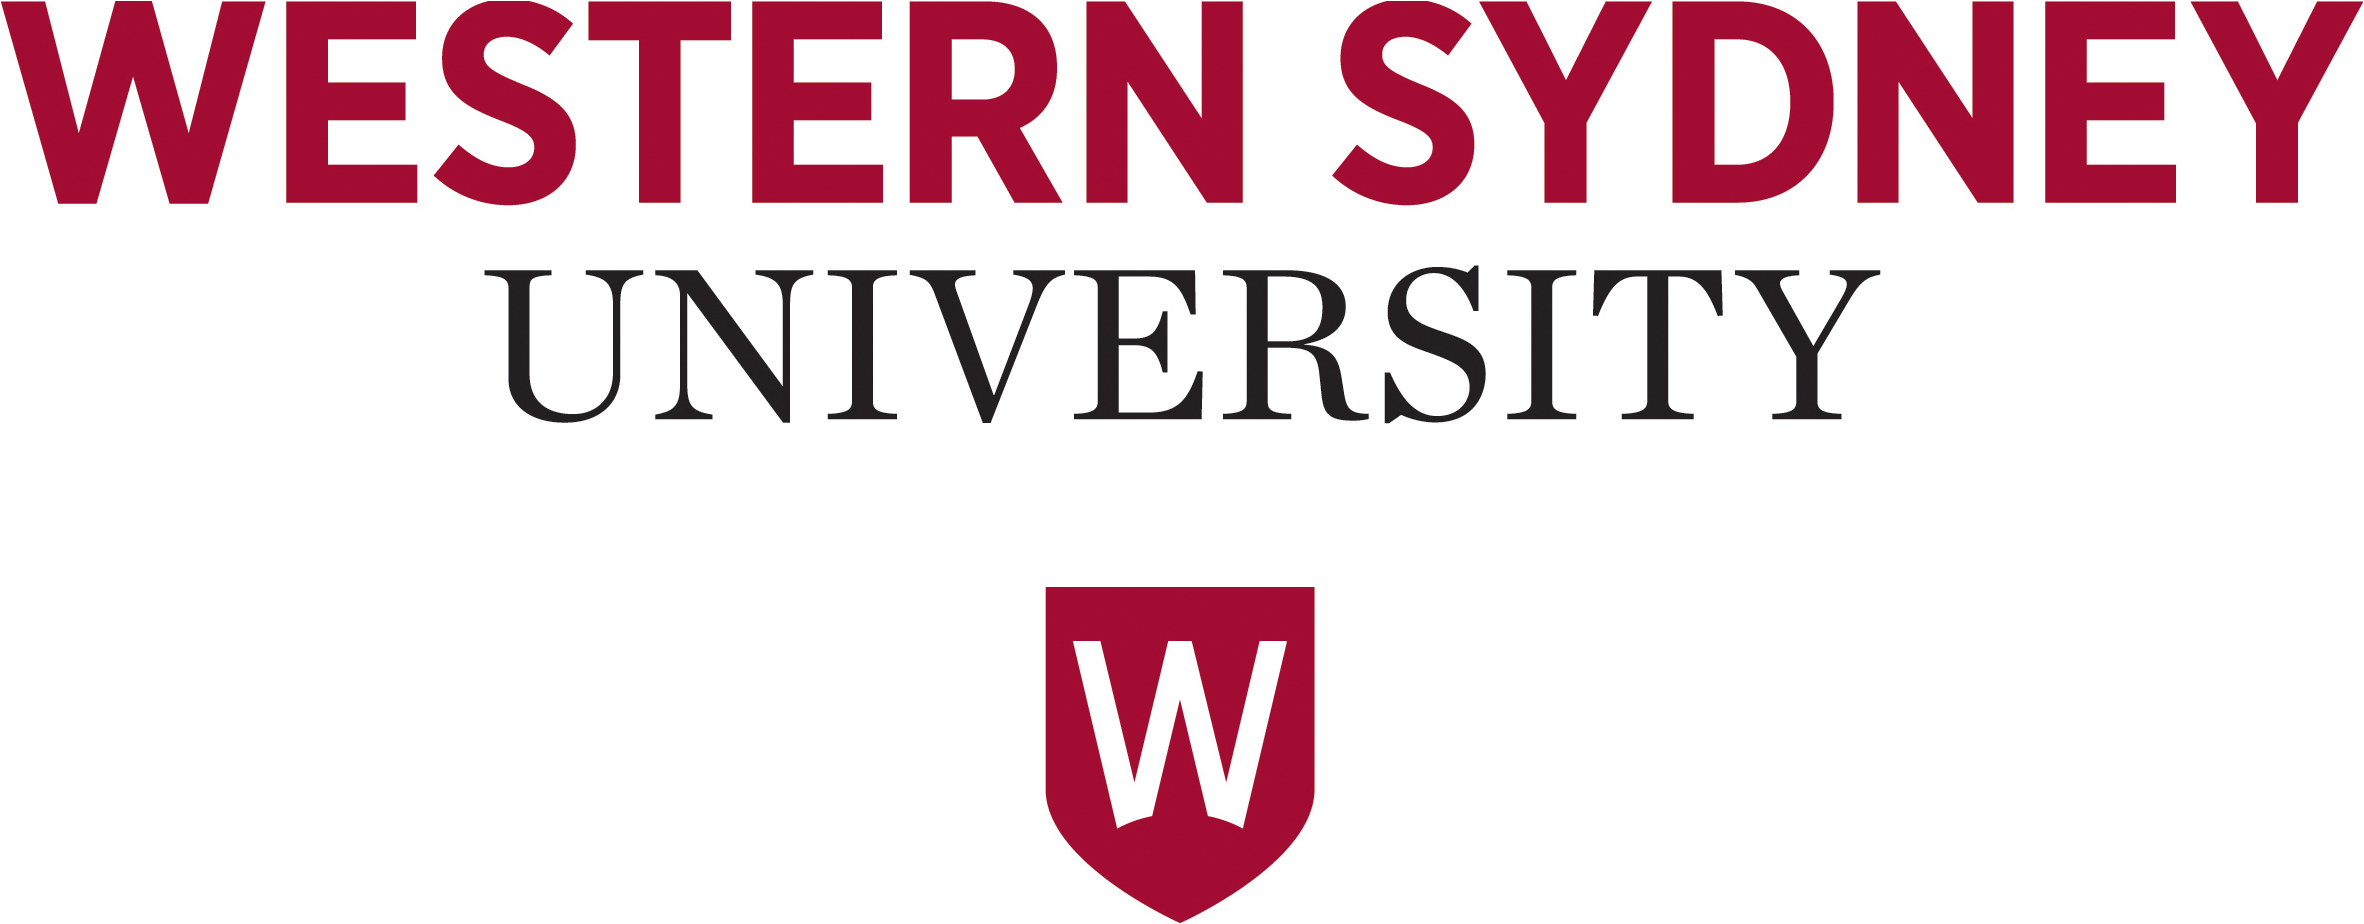 file western sydney university logo png wikimedia commons vector graphics free software vector graphics free balloons